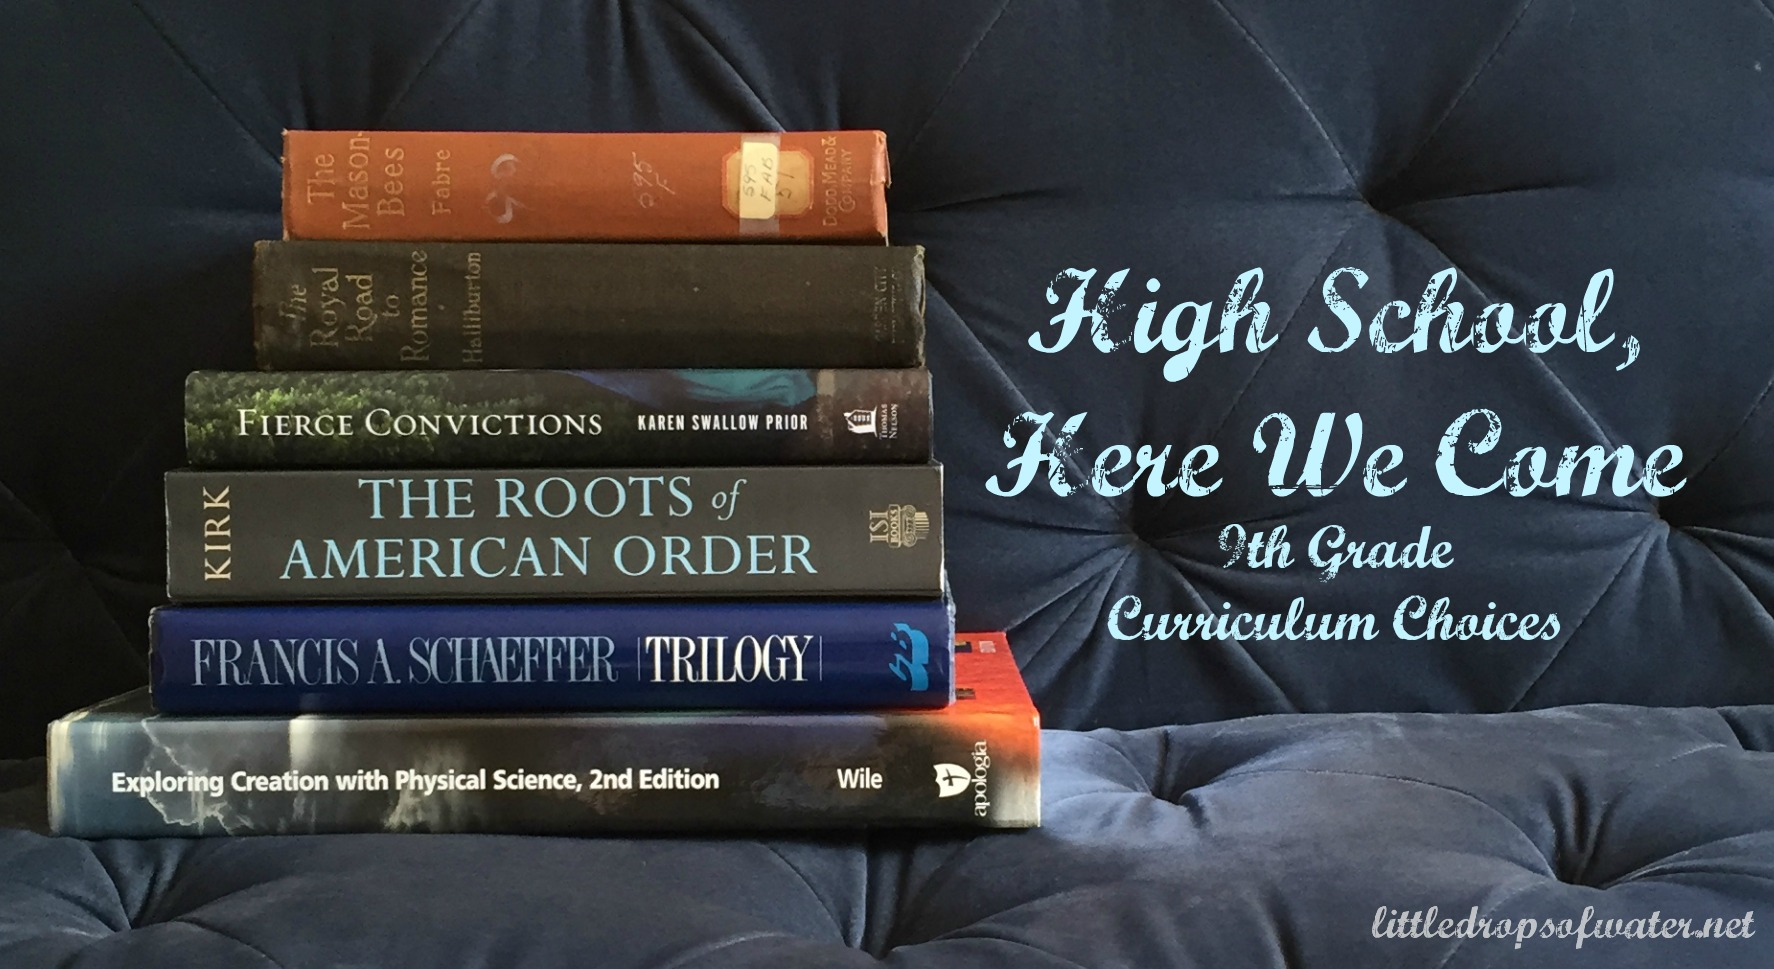 High School, Here We Come: 9th Grade Curriculum Choices